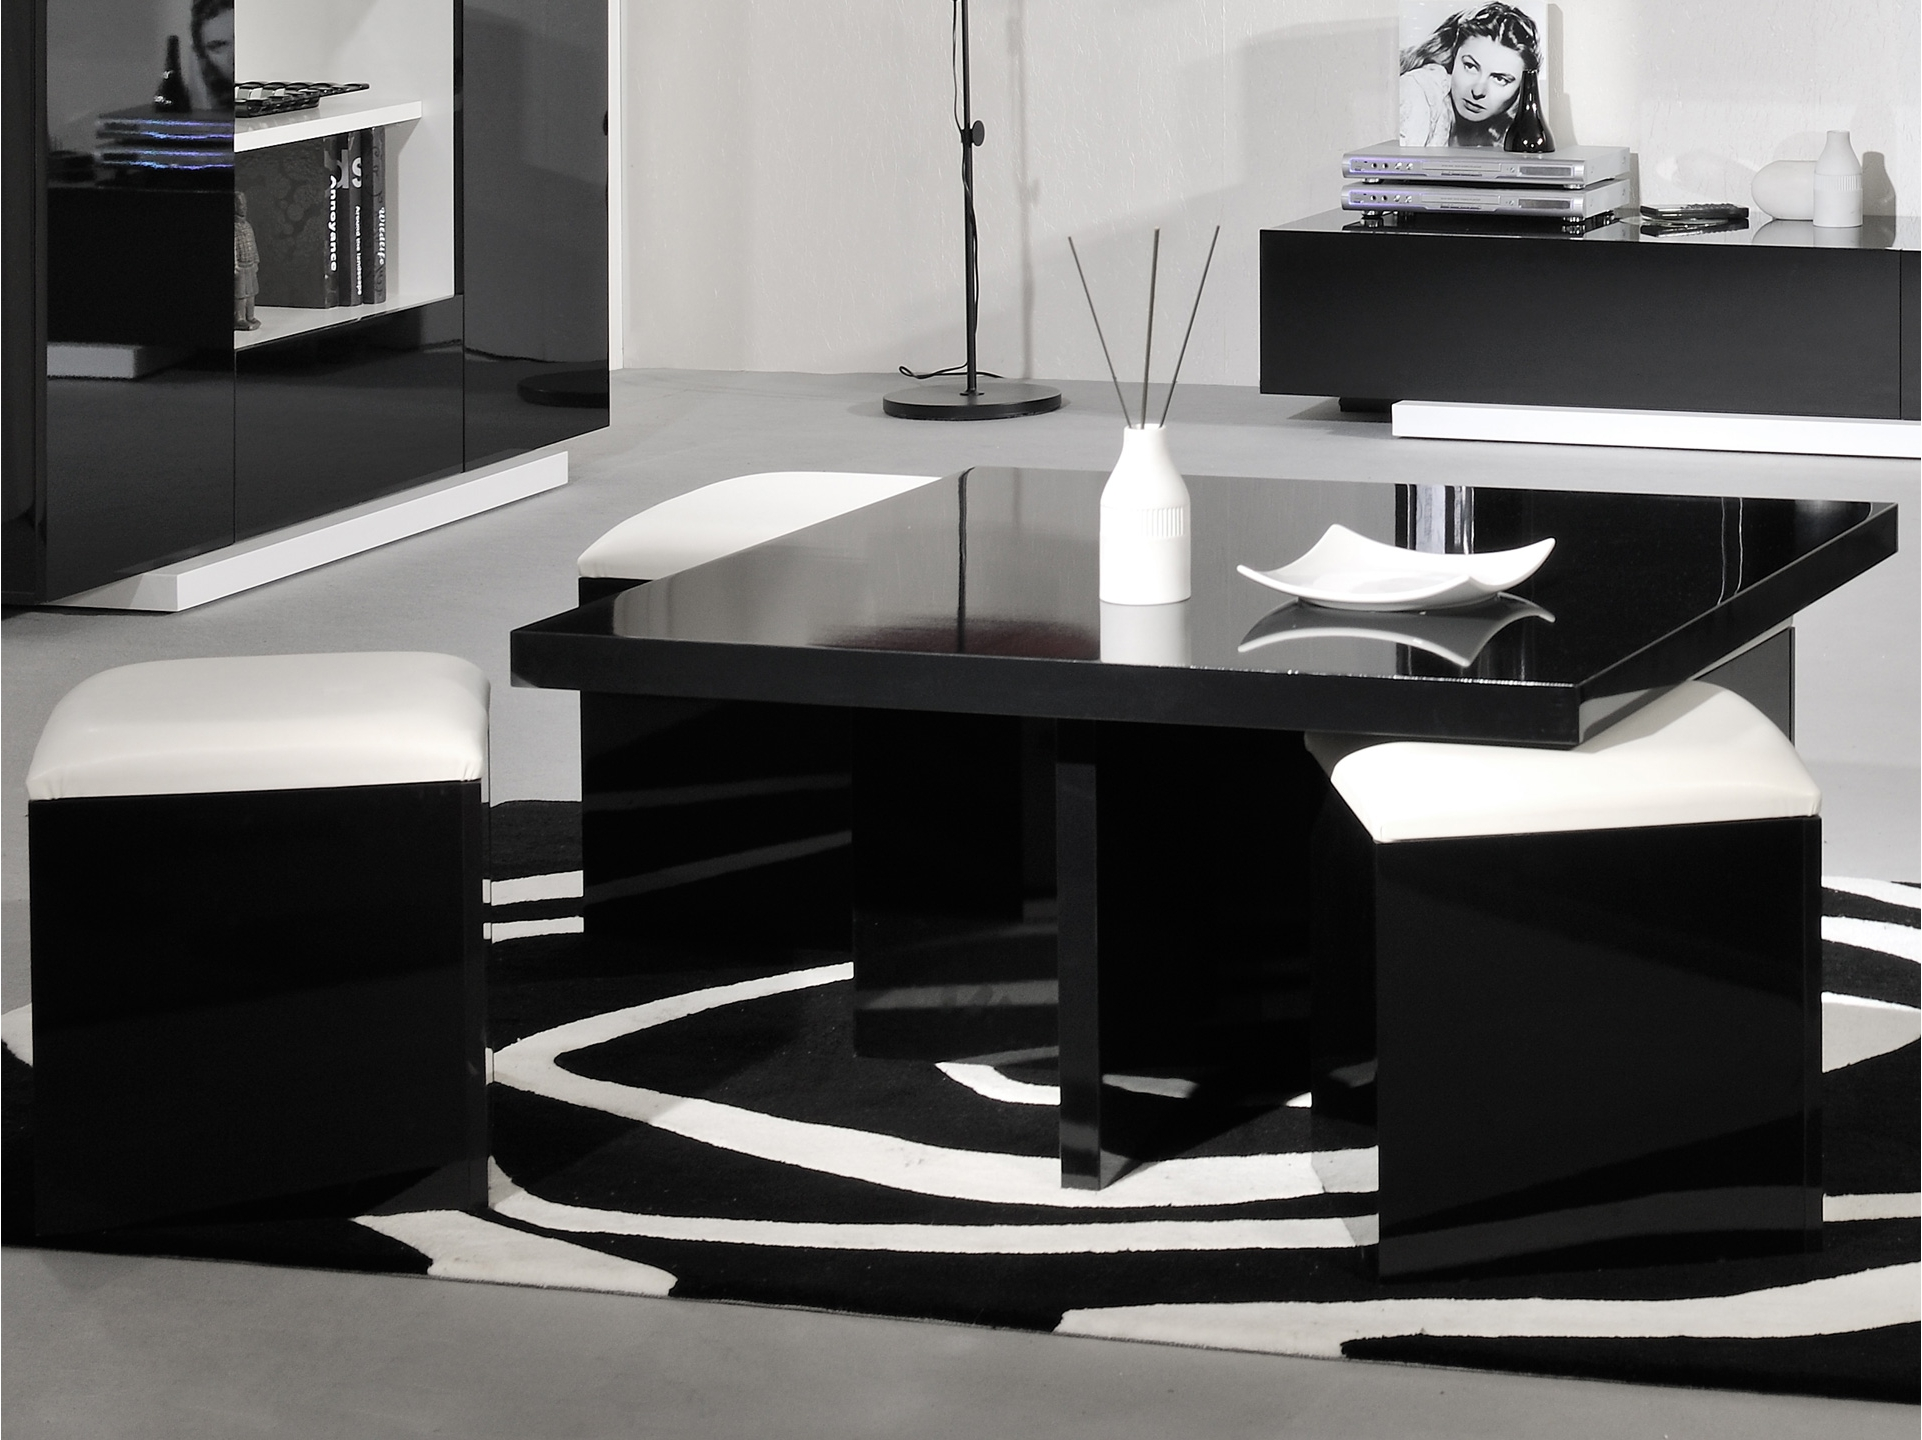 la table basse bien plus qu 39 un simple meuble. Black Bedroom Furniture Sets. Home Design Ideas